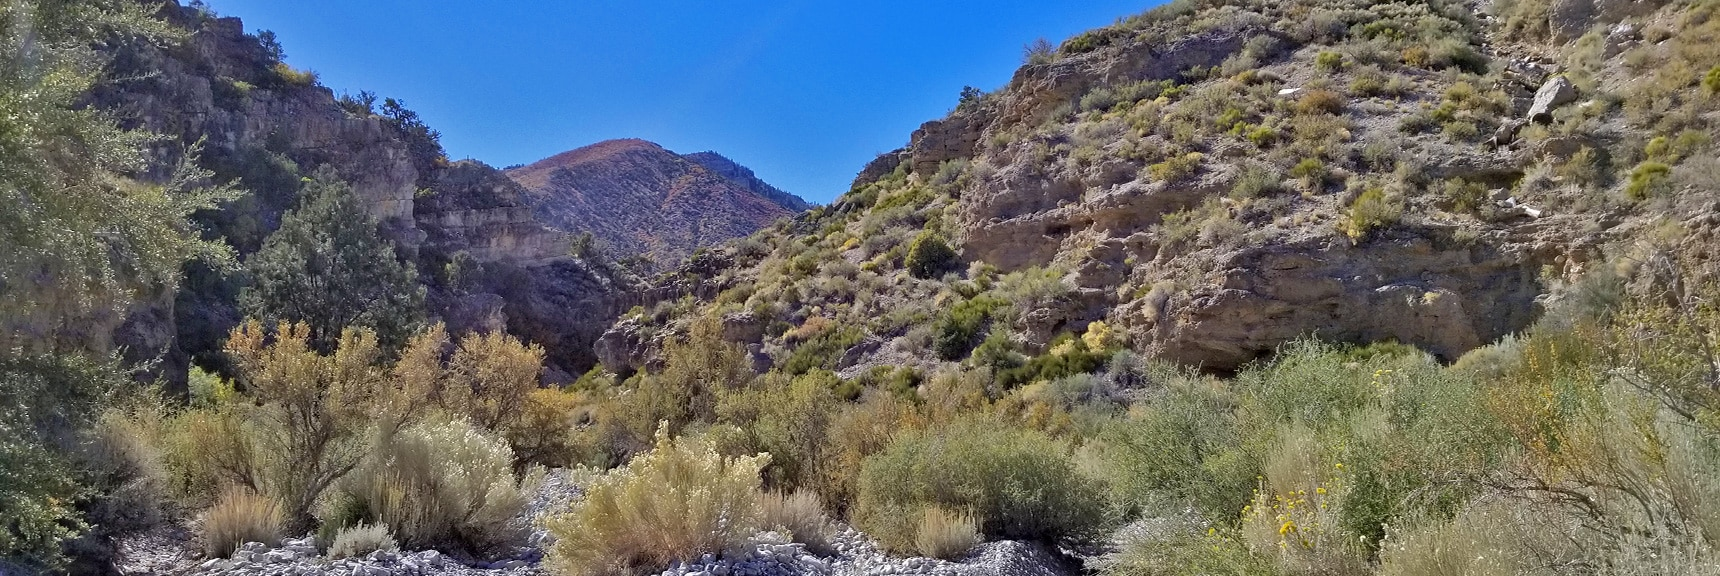 View toward Harris Mountain, Nearing the Upper Opening of the Canyon | Harris Springs Canyon | Biking from Centennial Hills | Spring Mountains, Nevada